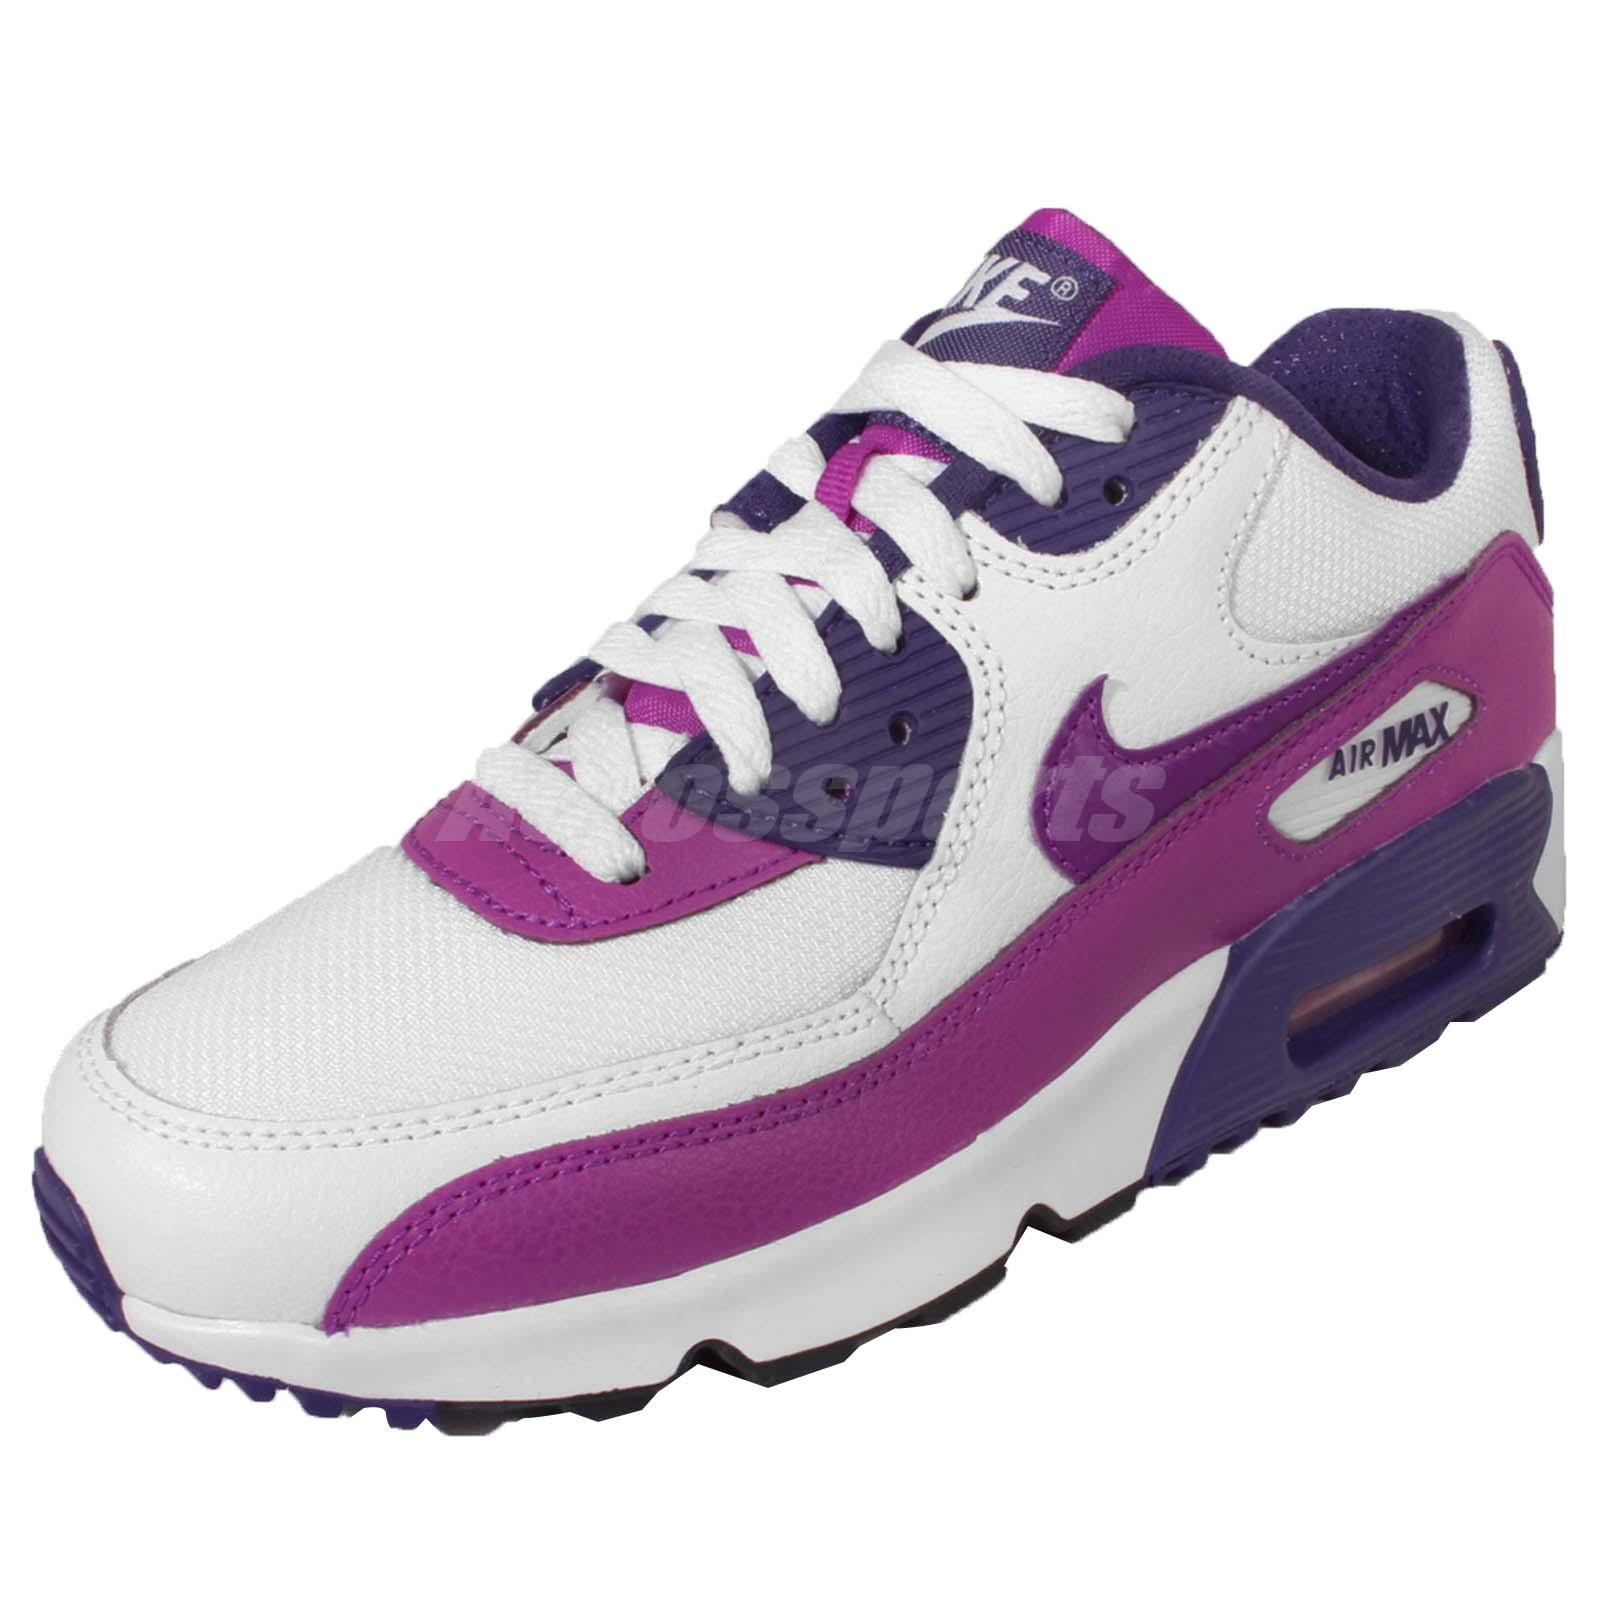 nike air max 90 mesh gs white purple kids youth running. Black Bedroom Furniture Sets. Home Design Ideas